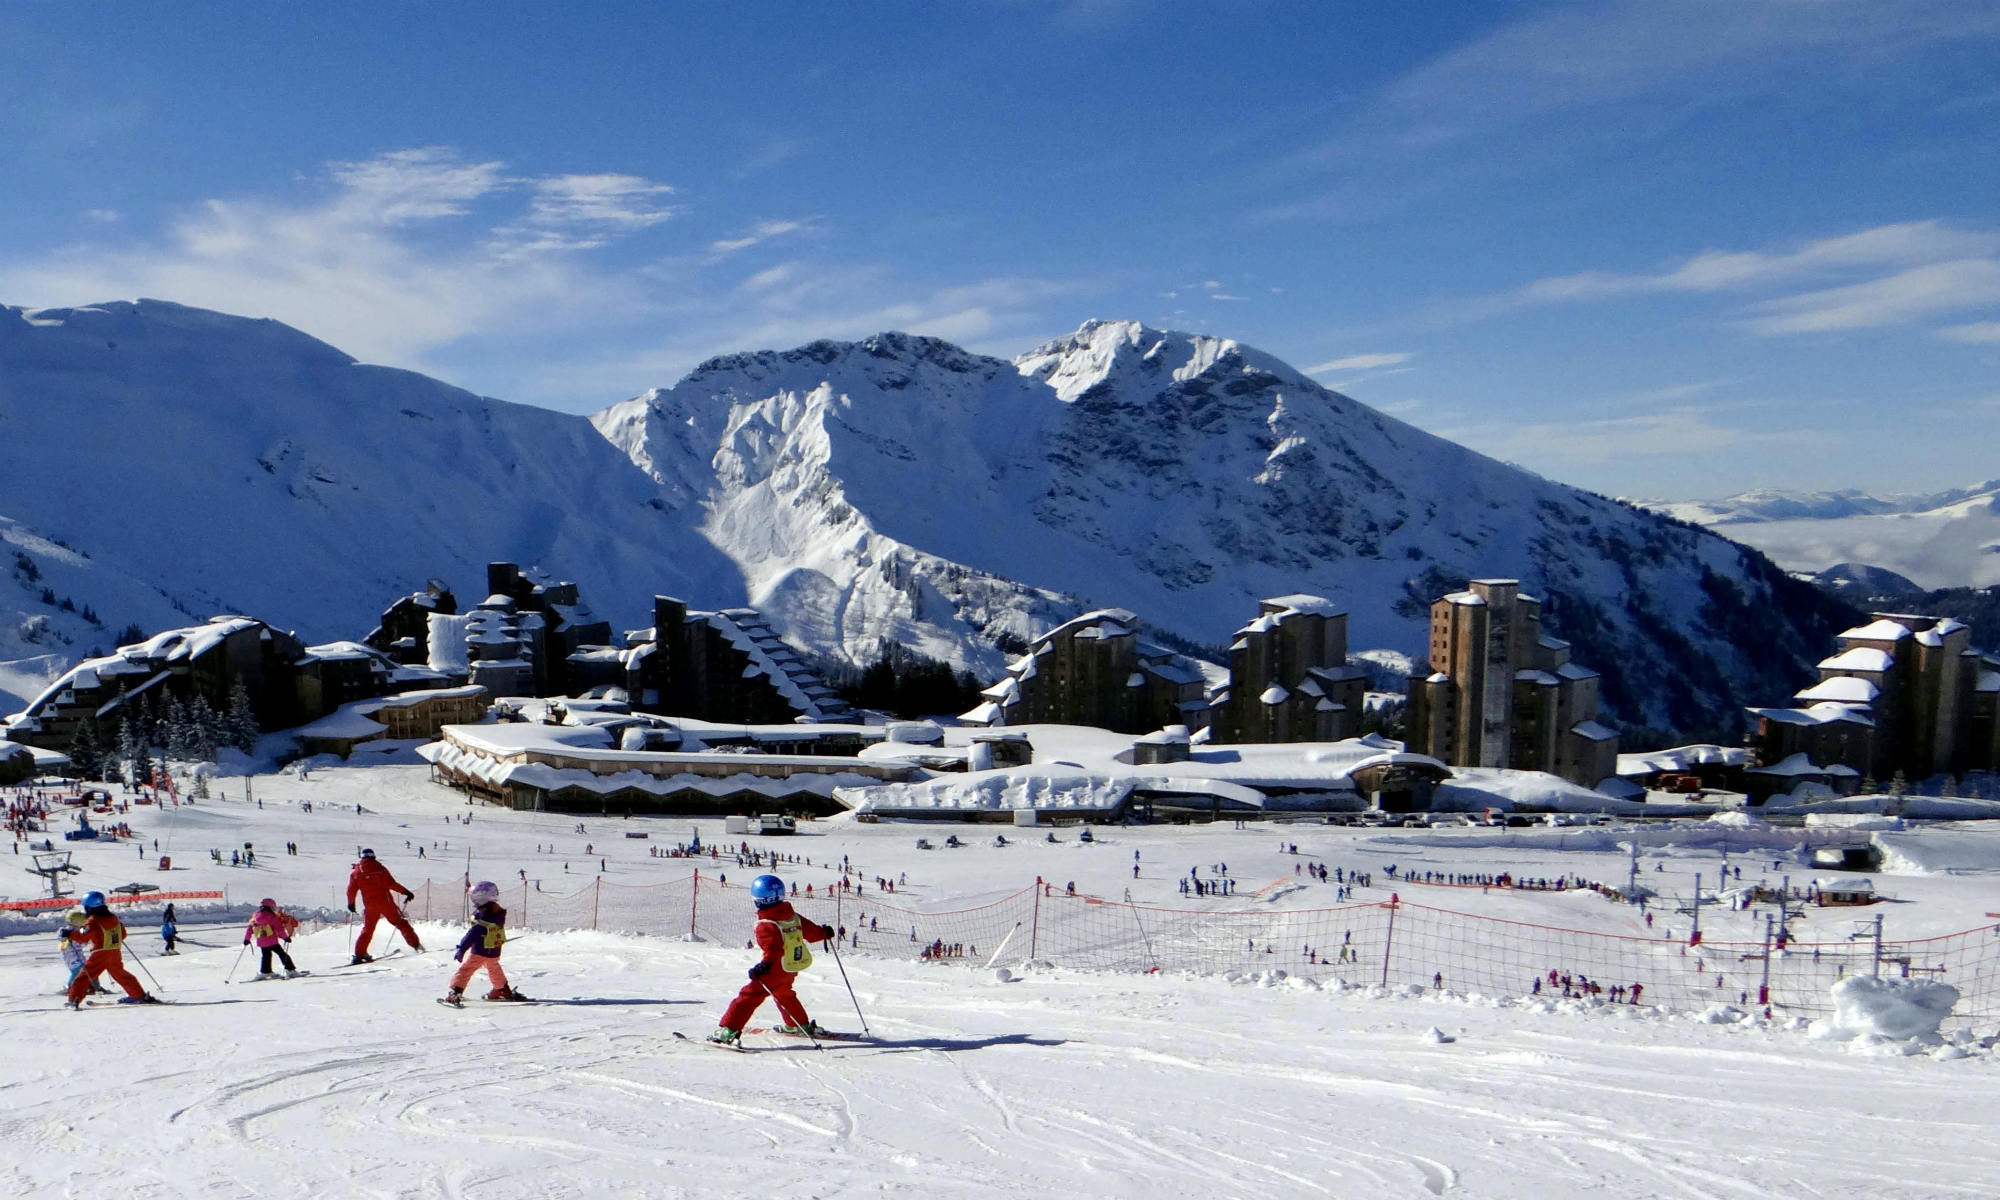 A beginners ski lesson on nursery slopes near Avoriaz.